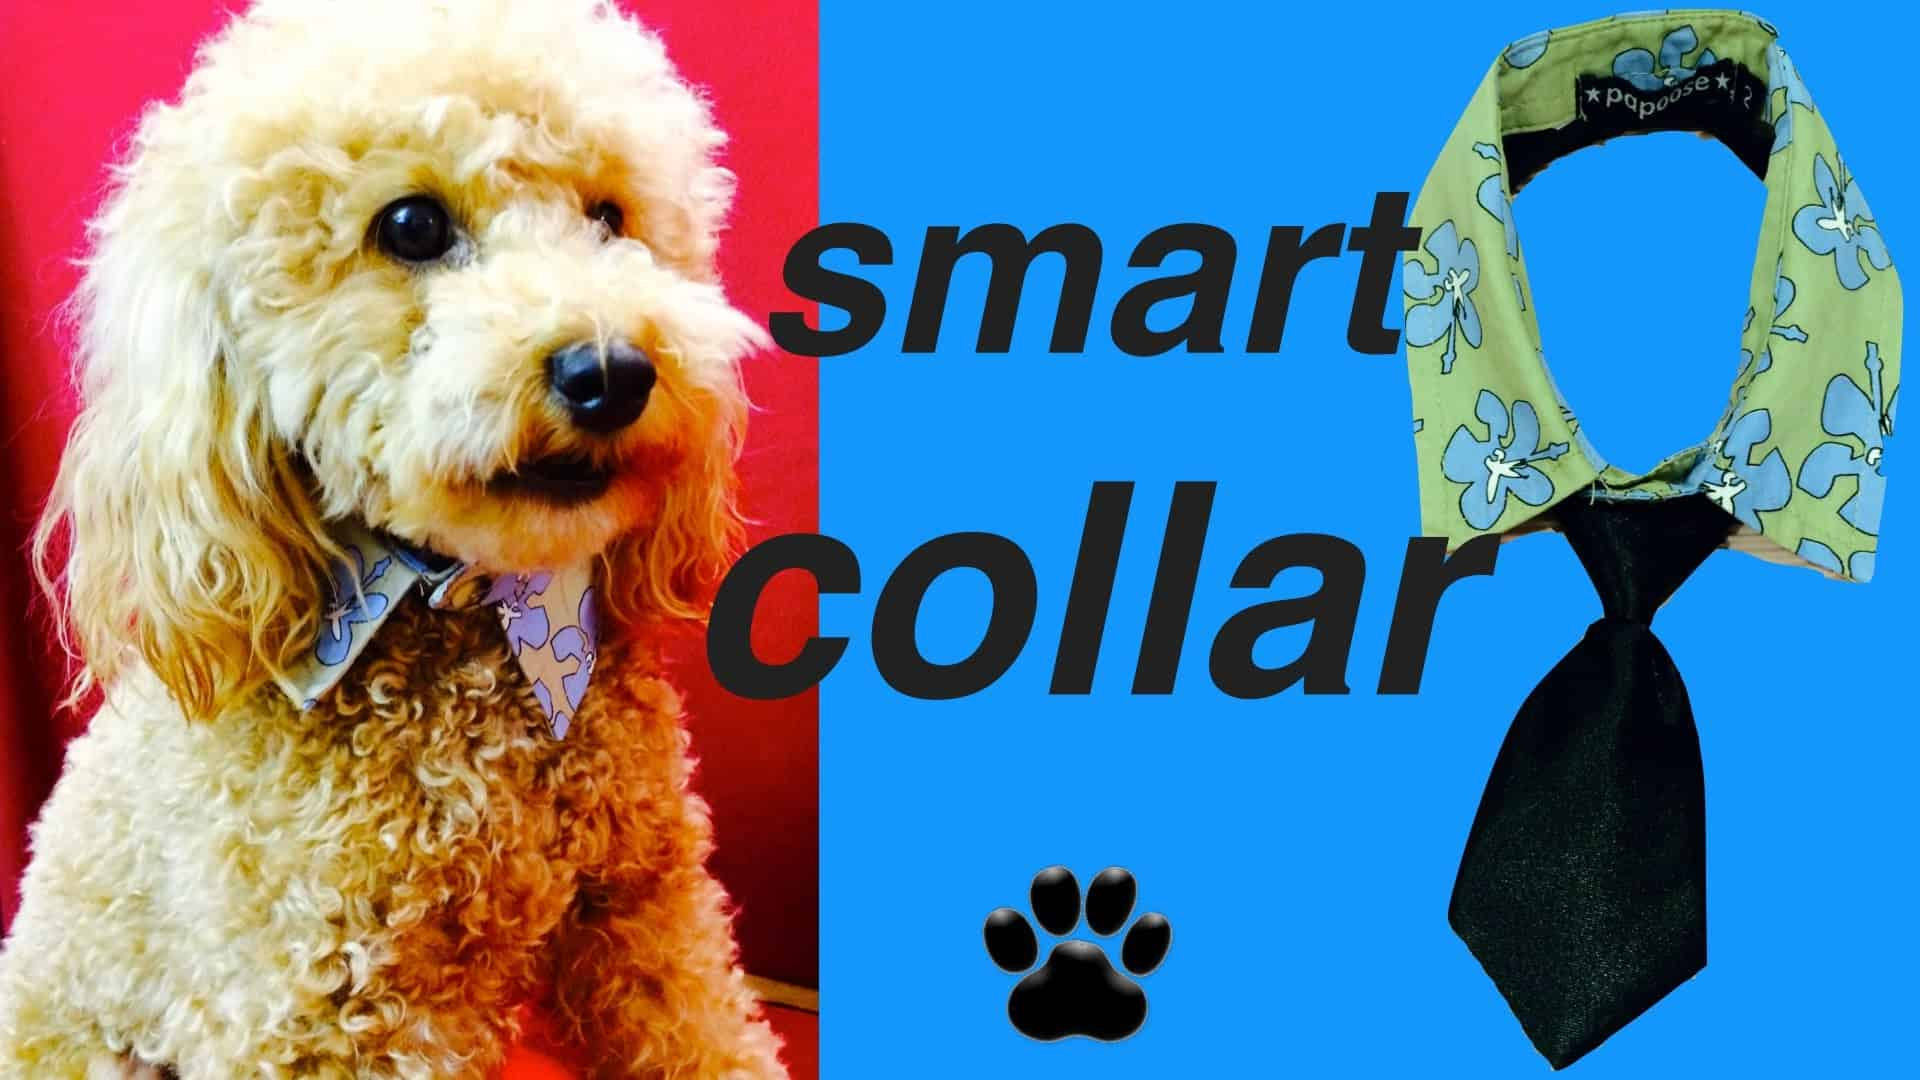 Silly necktie dog collar